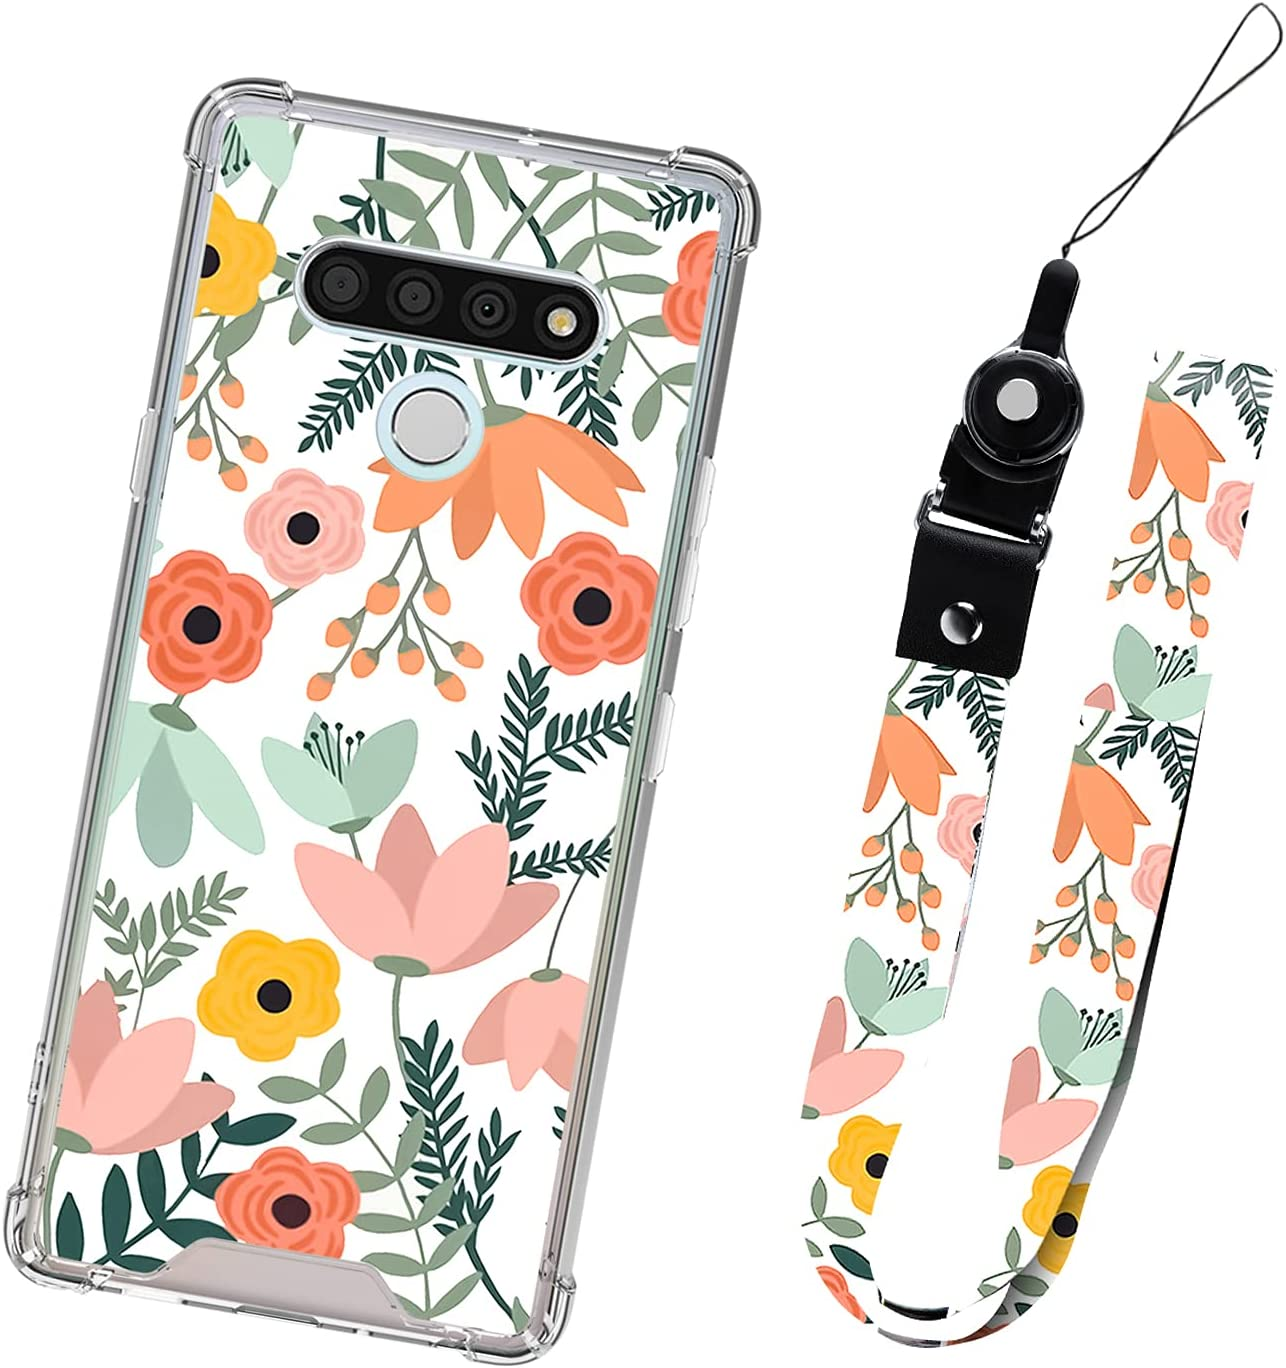 LG K51 5G Case Orange Floral with Lanyard for Women Girls Protective Shockproof Heavy Duty Cute Pink Flower Pattern Cell Phone Bumper Cover Case Neck Strap for LG K51 5G 6.5